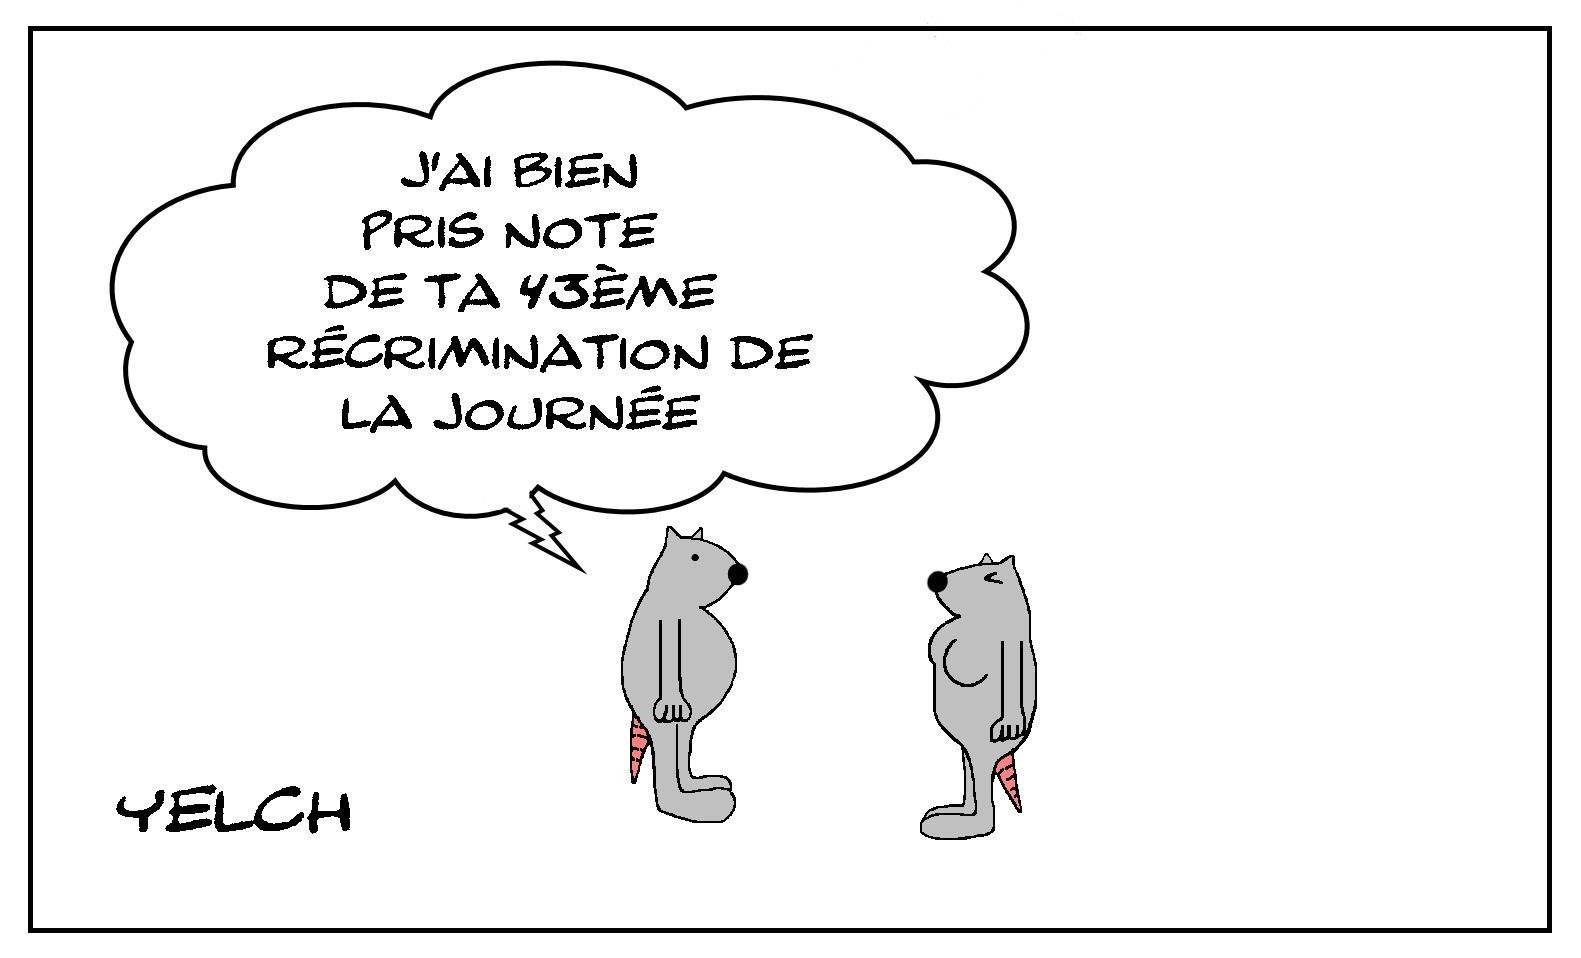 Récriminations et couple